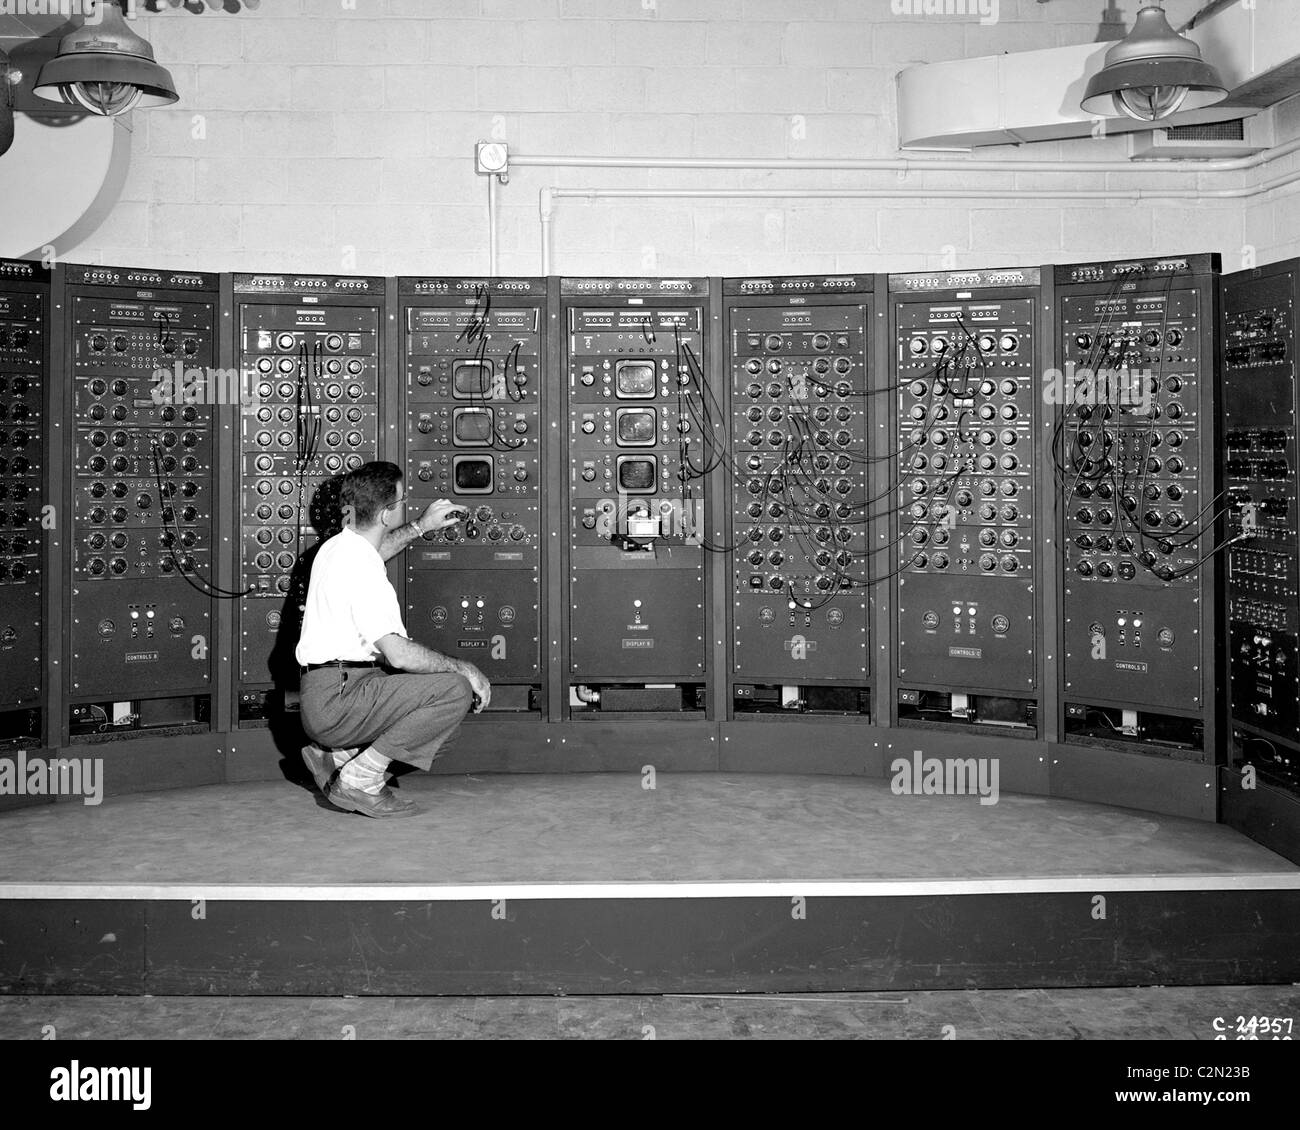 Analog Computing Machine, an early version of the modern computer. - Stock Image